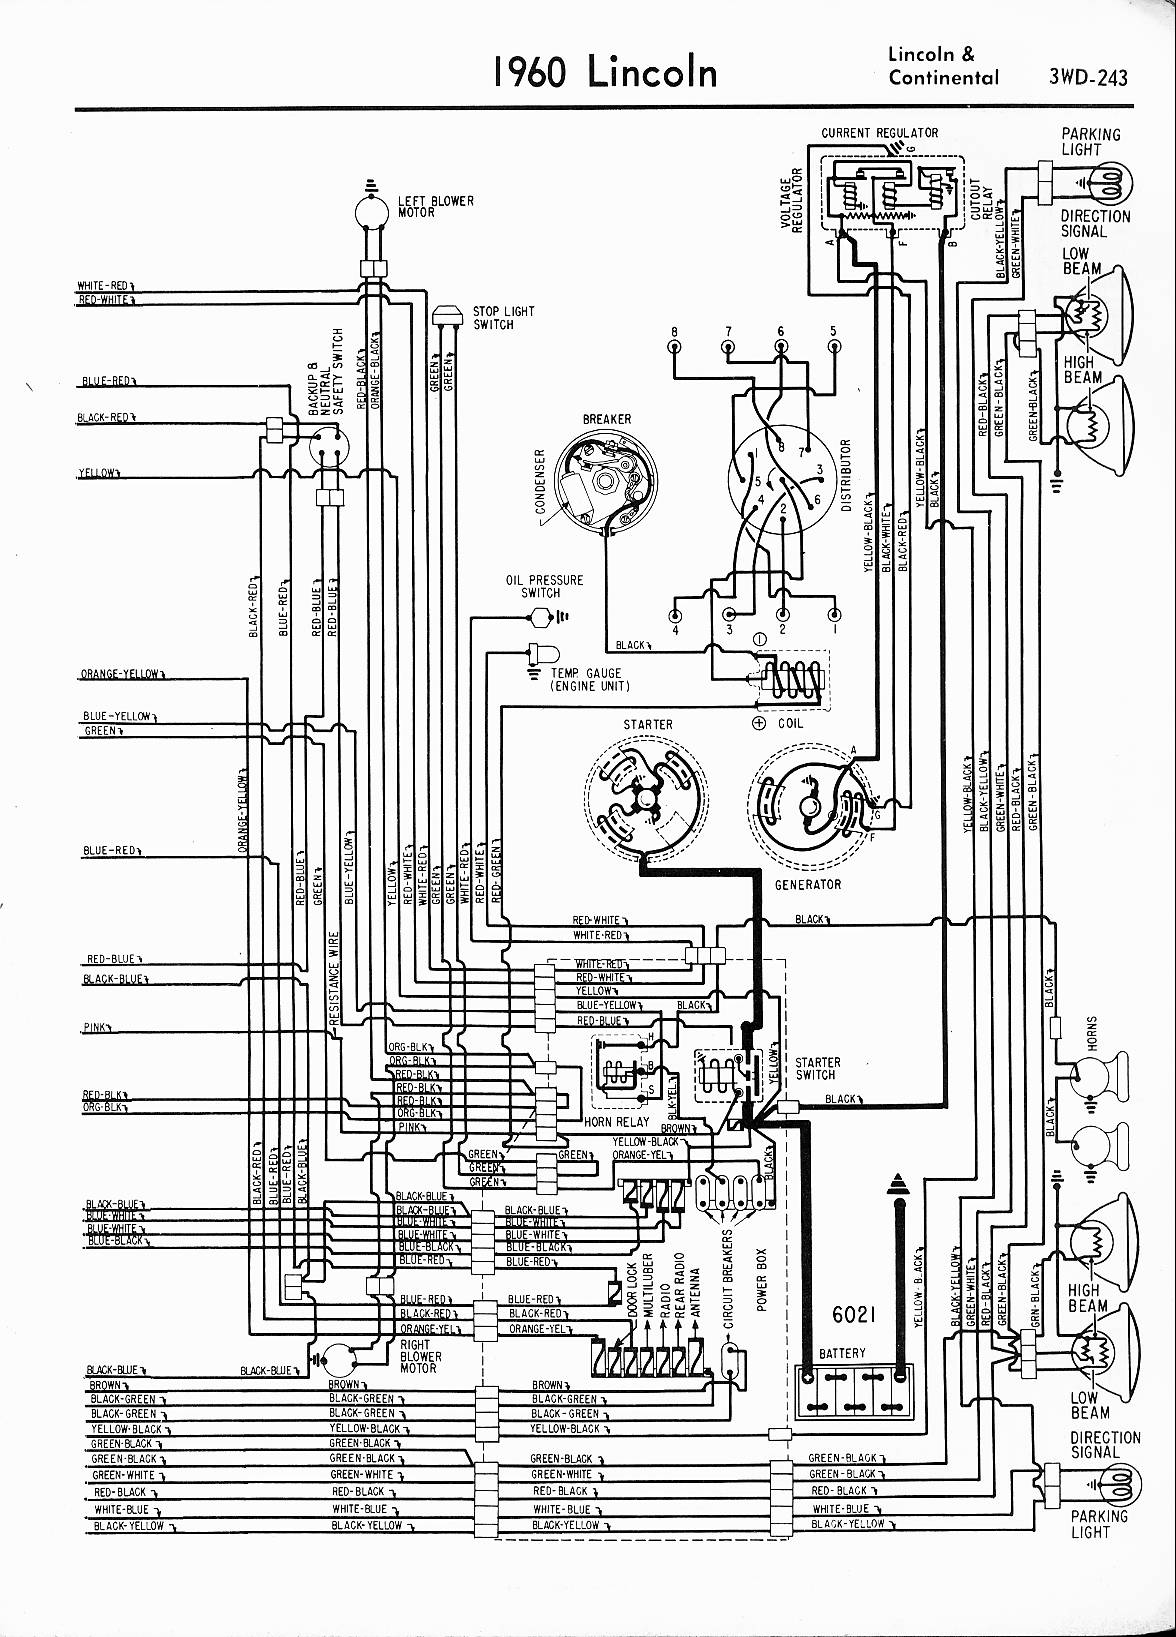 1971 Jeep Wagoneer Wiring Diagram Schematic 2019 Cj5 1977 Lincoln Town Car Ford F150